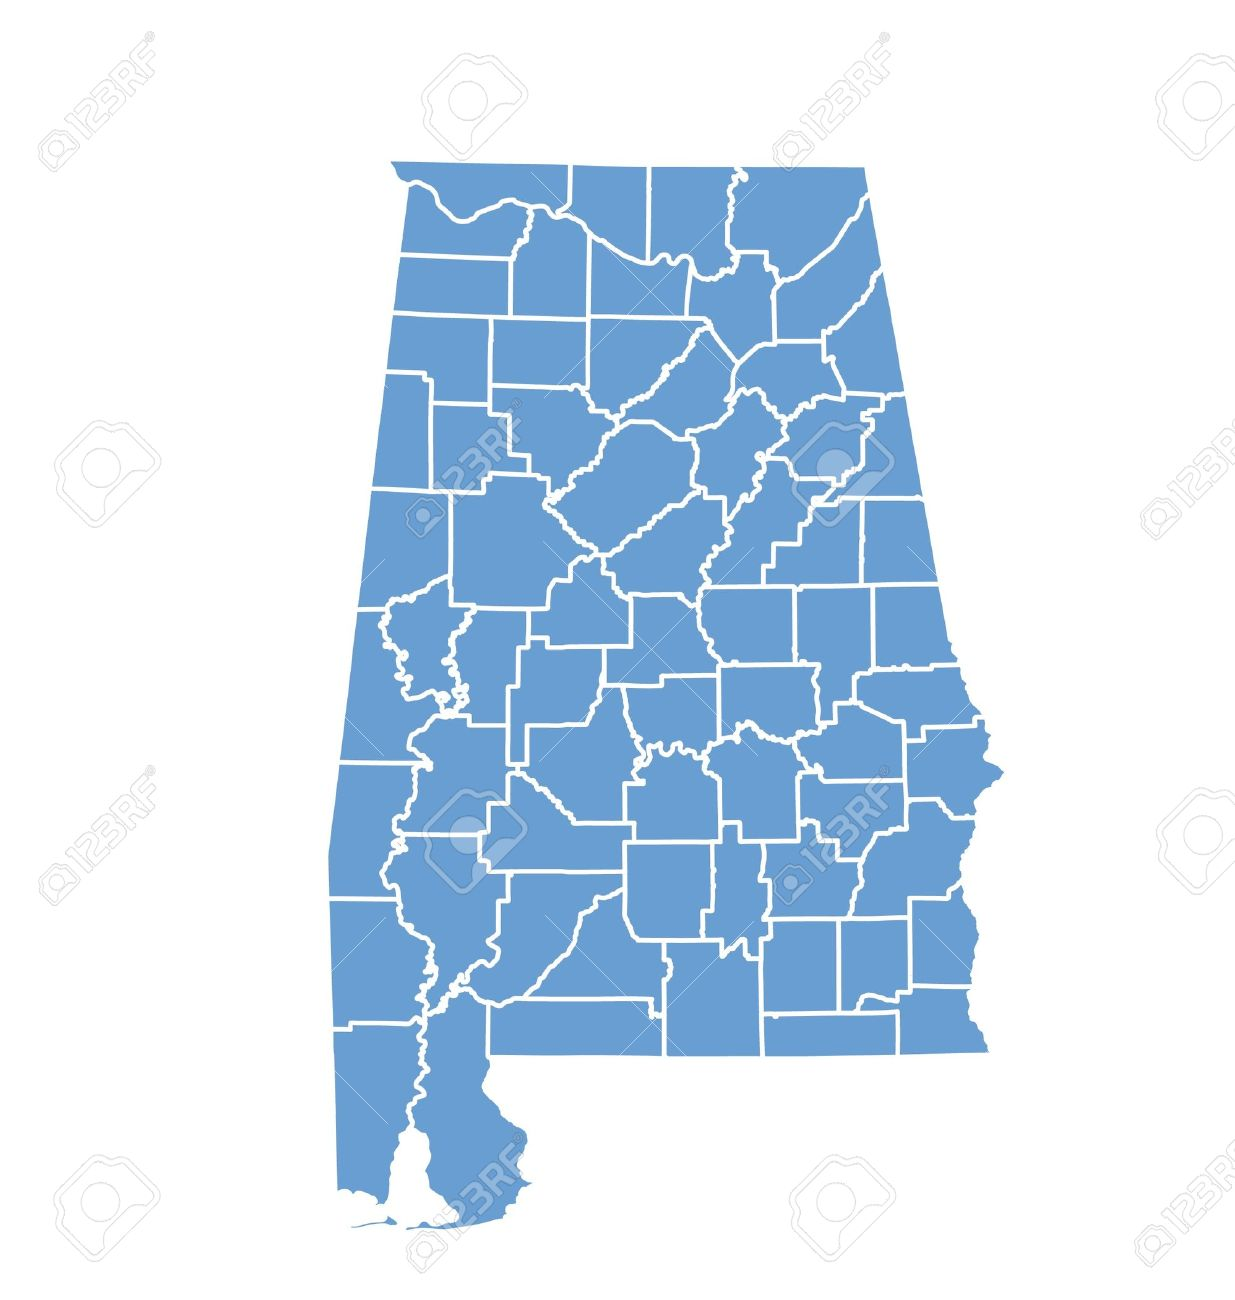 State Map Of Alabama By Counties Royalty Free Cliparts Vectors - Maps of alabama counties